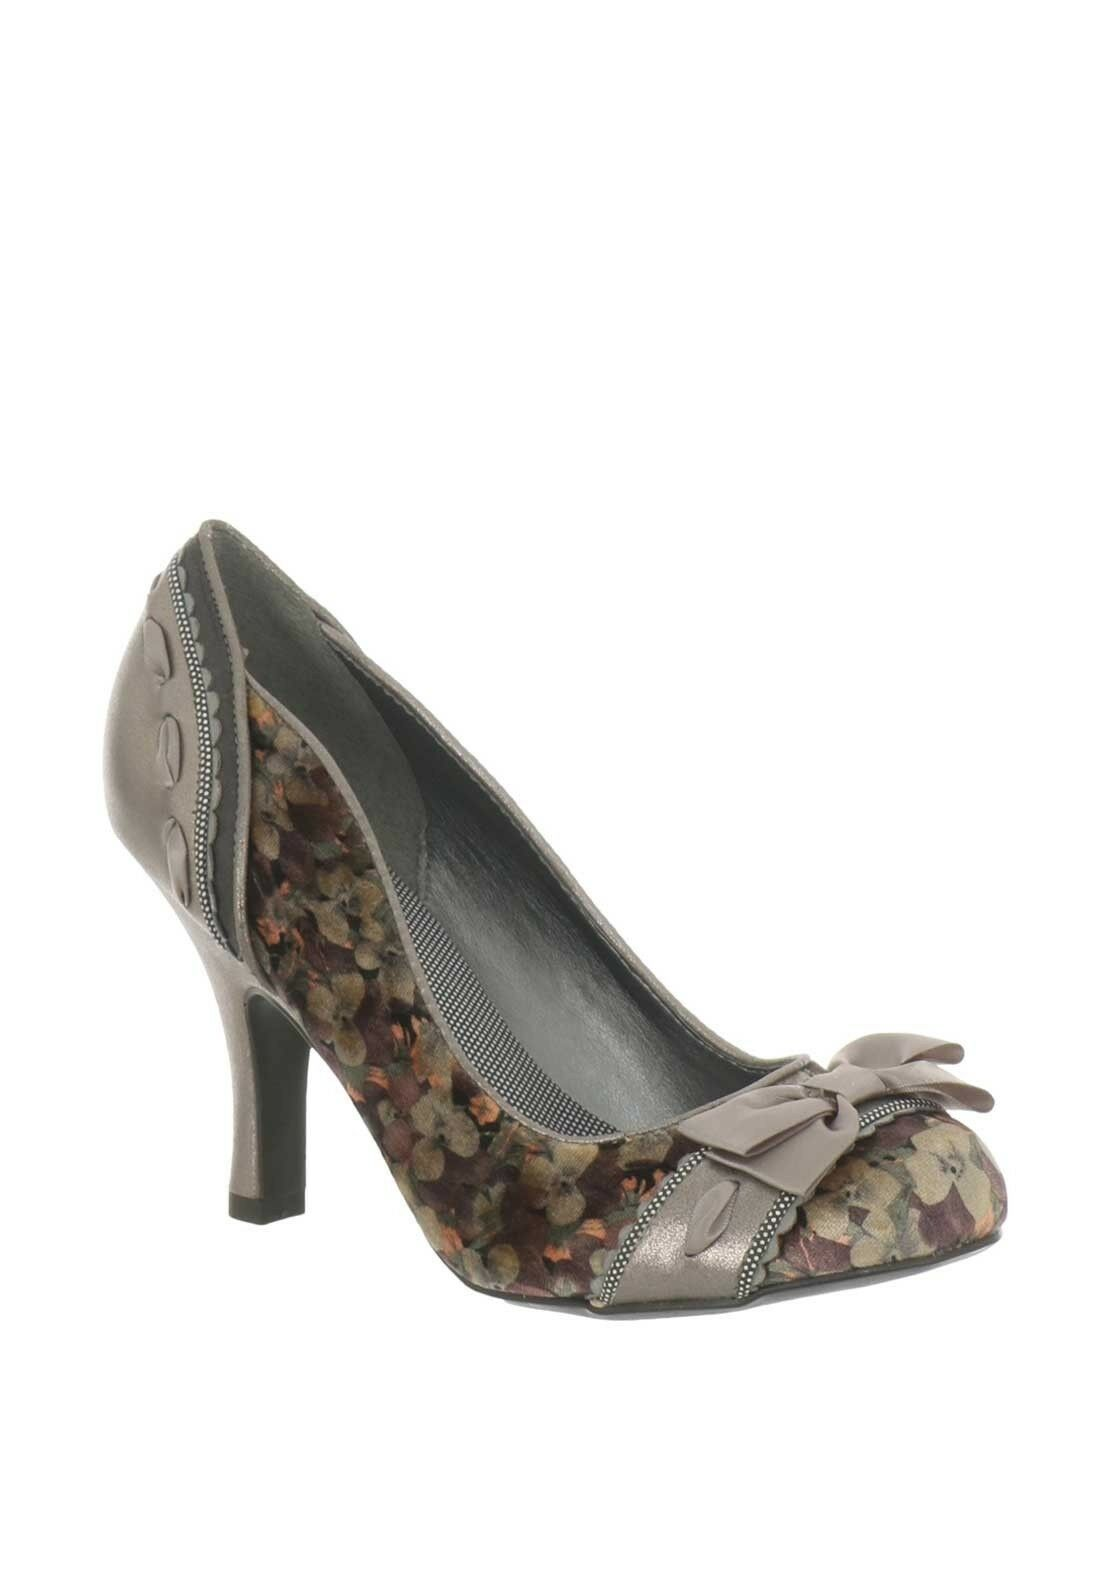 Ruby Shoo Amy Velvet Heeled Schuhes Pewter New In